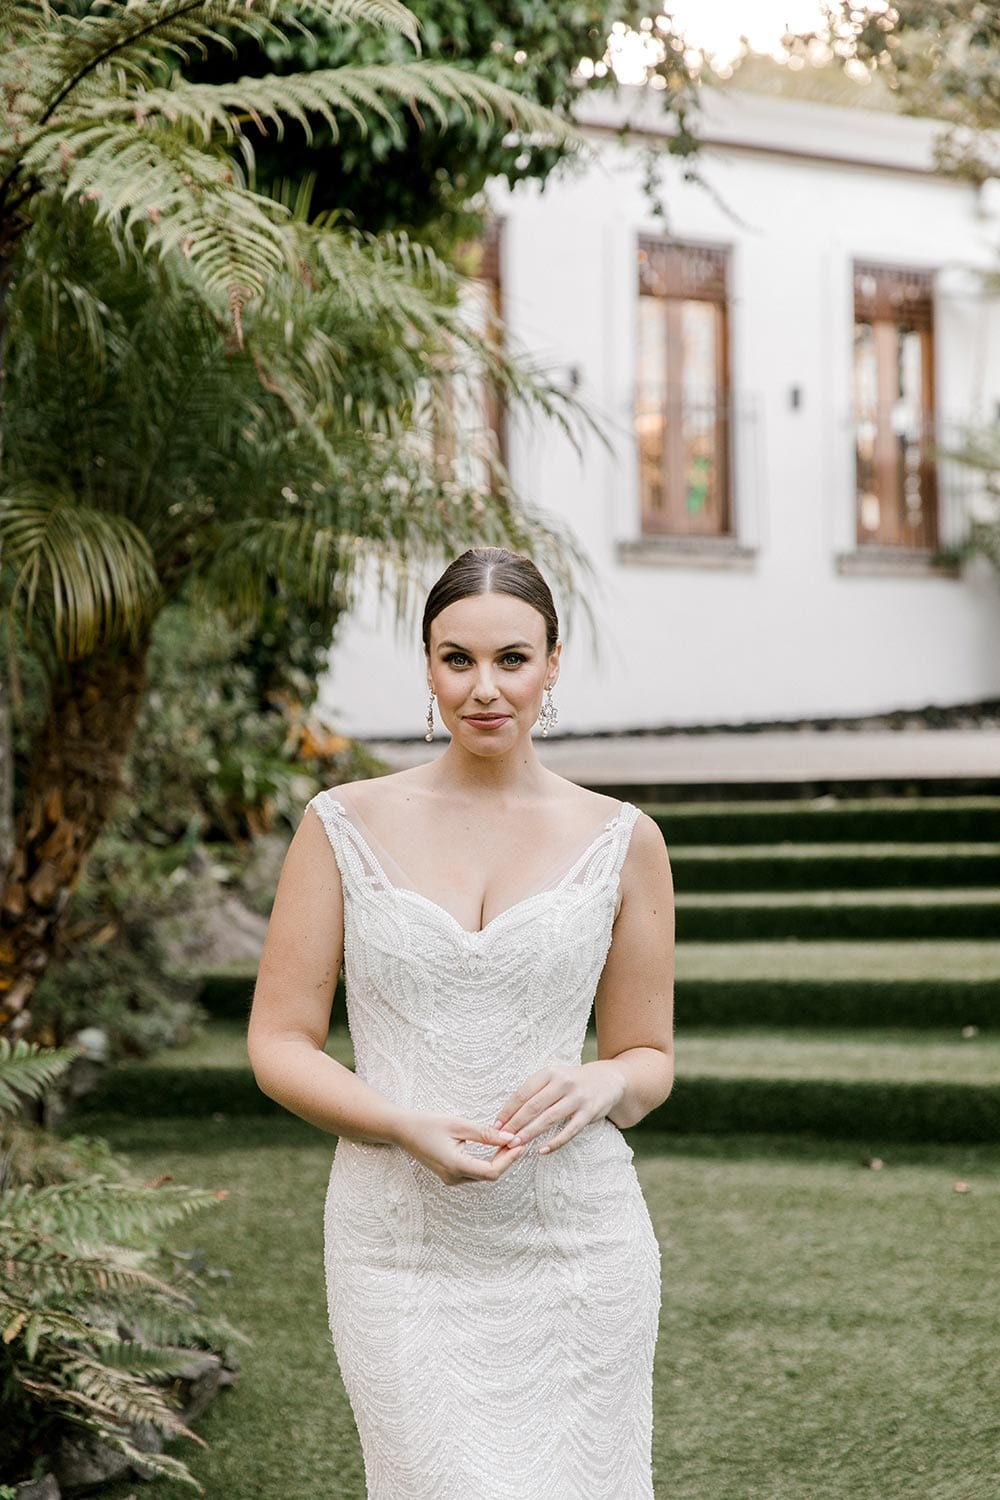 Juliette Wedding Dress from Vinka Design. Flattering stretch fitted lace wedding dress with beautiful ivory rich beading. Structured bodice provides support while remaining effortless to wear. Portrait with structured bodice with neckline. Photographed at Tui Hills.